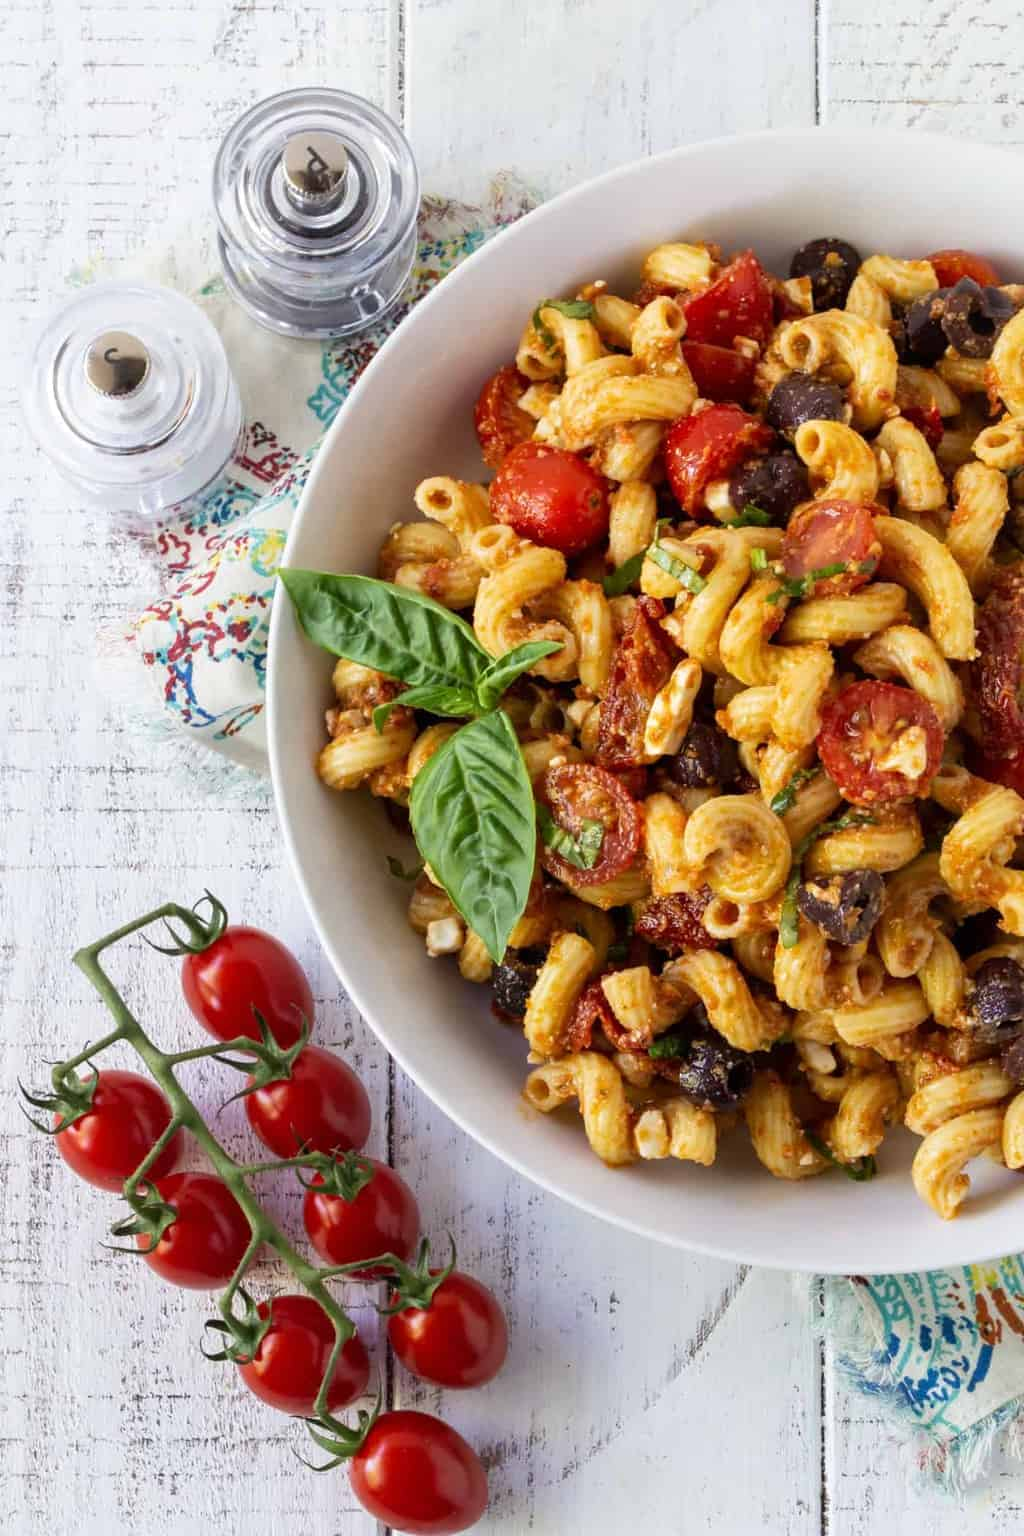 Pasta Salad in a white bowl with cherry tomatoes and fresh basil.